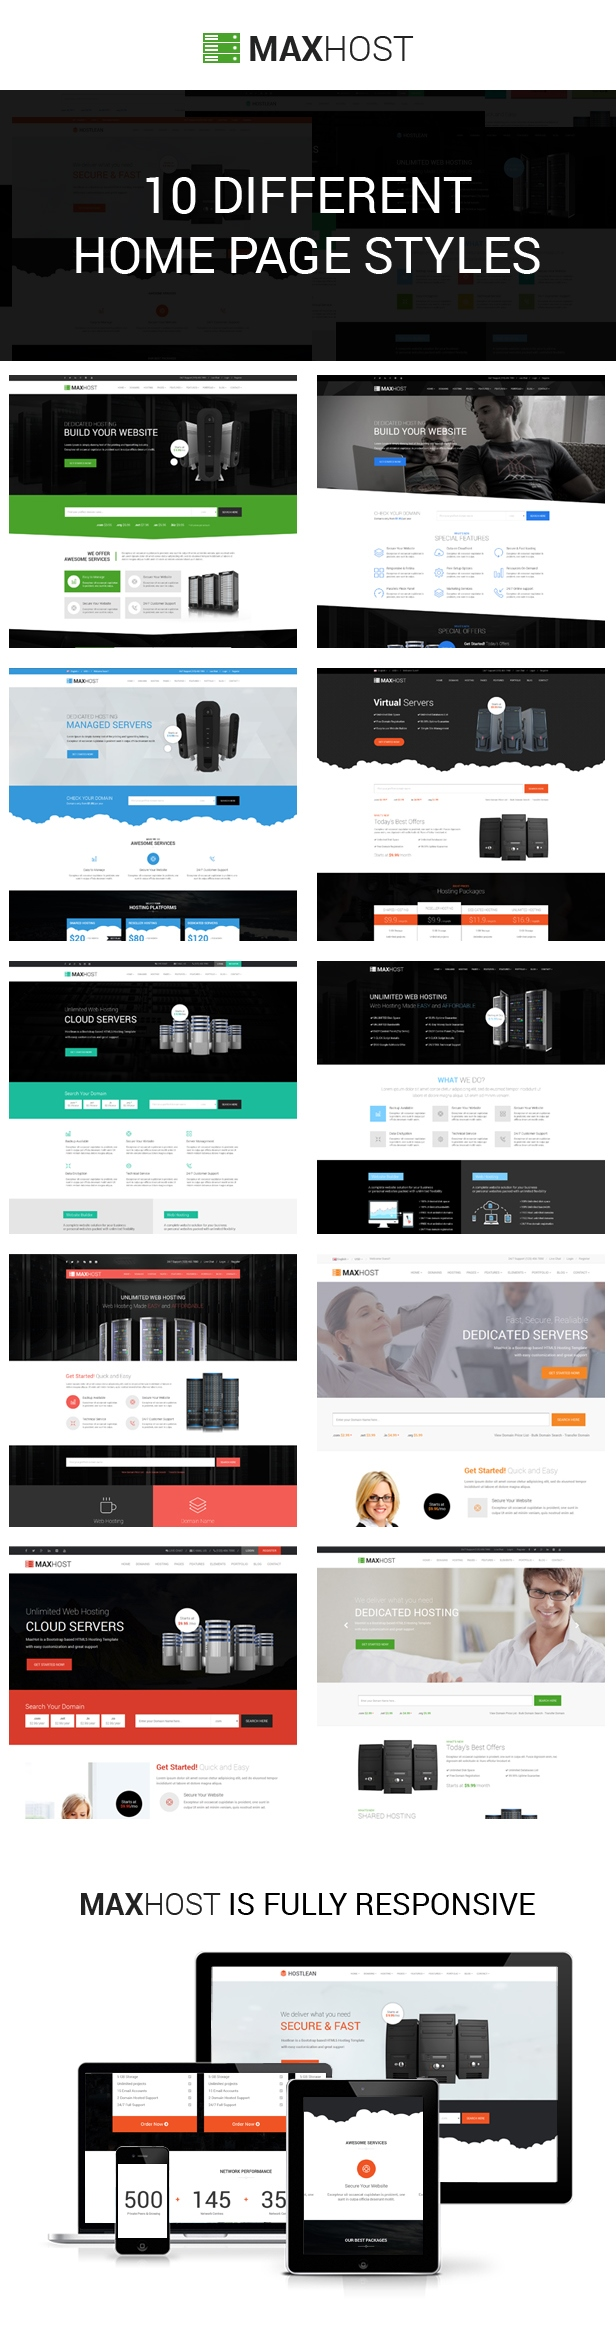 maxhost 10 different home styles - MaxHost - Web Hosting, WHMCS and Corporate Business WordPress Theme with WooCommerce